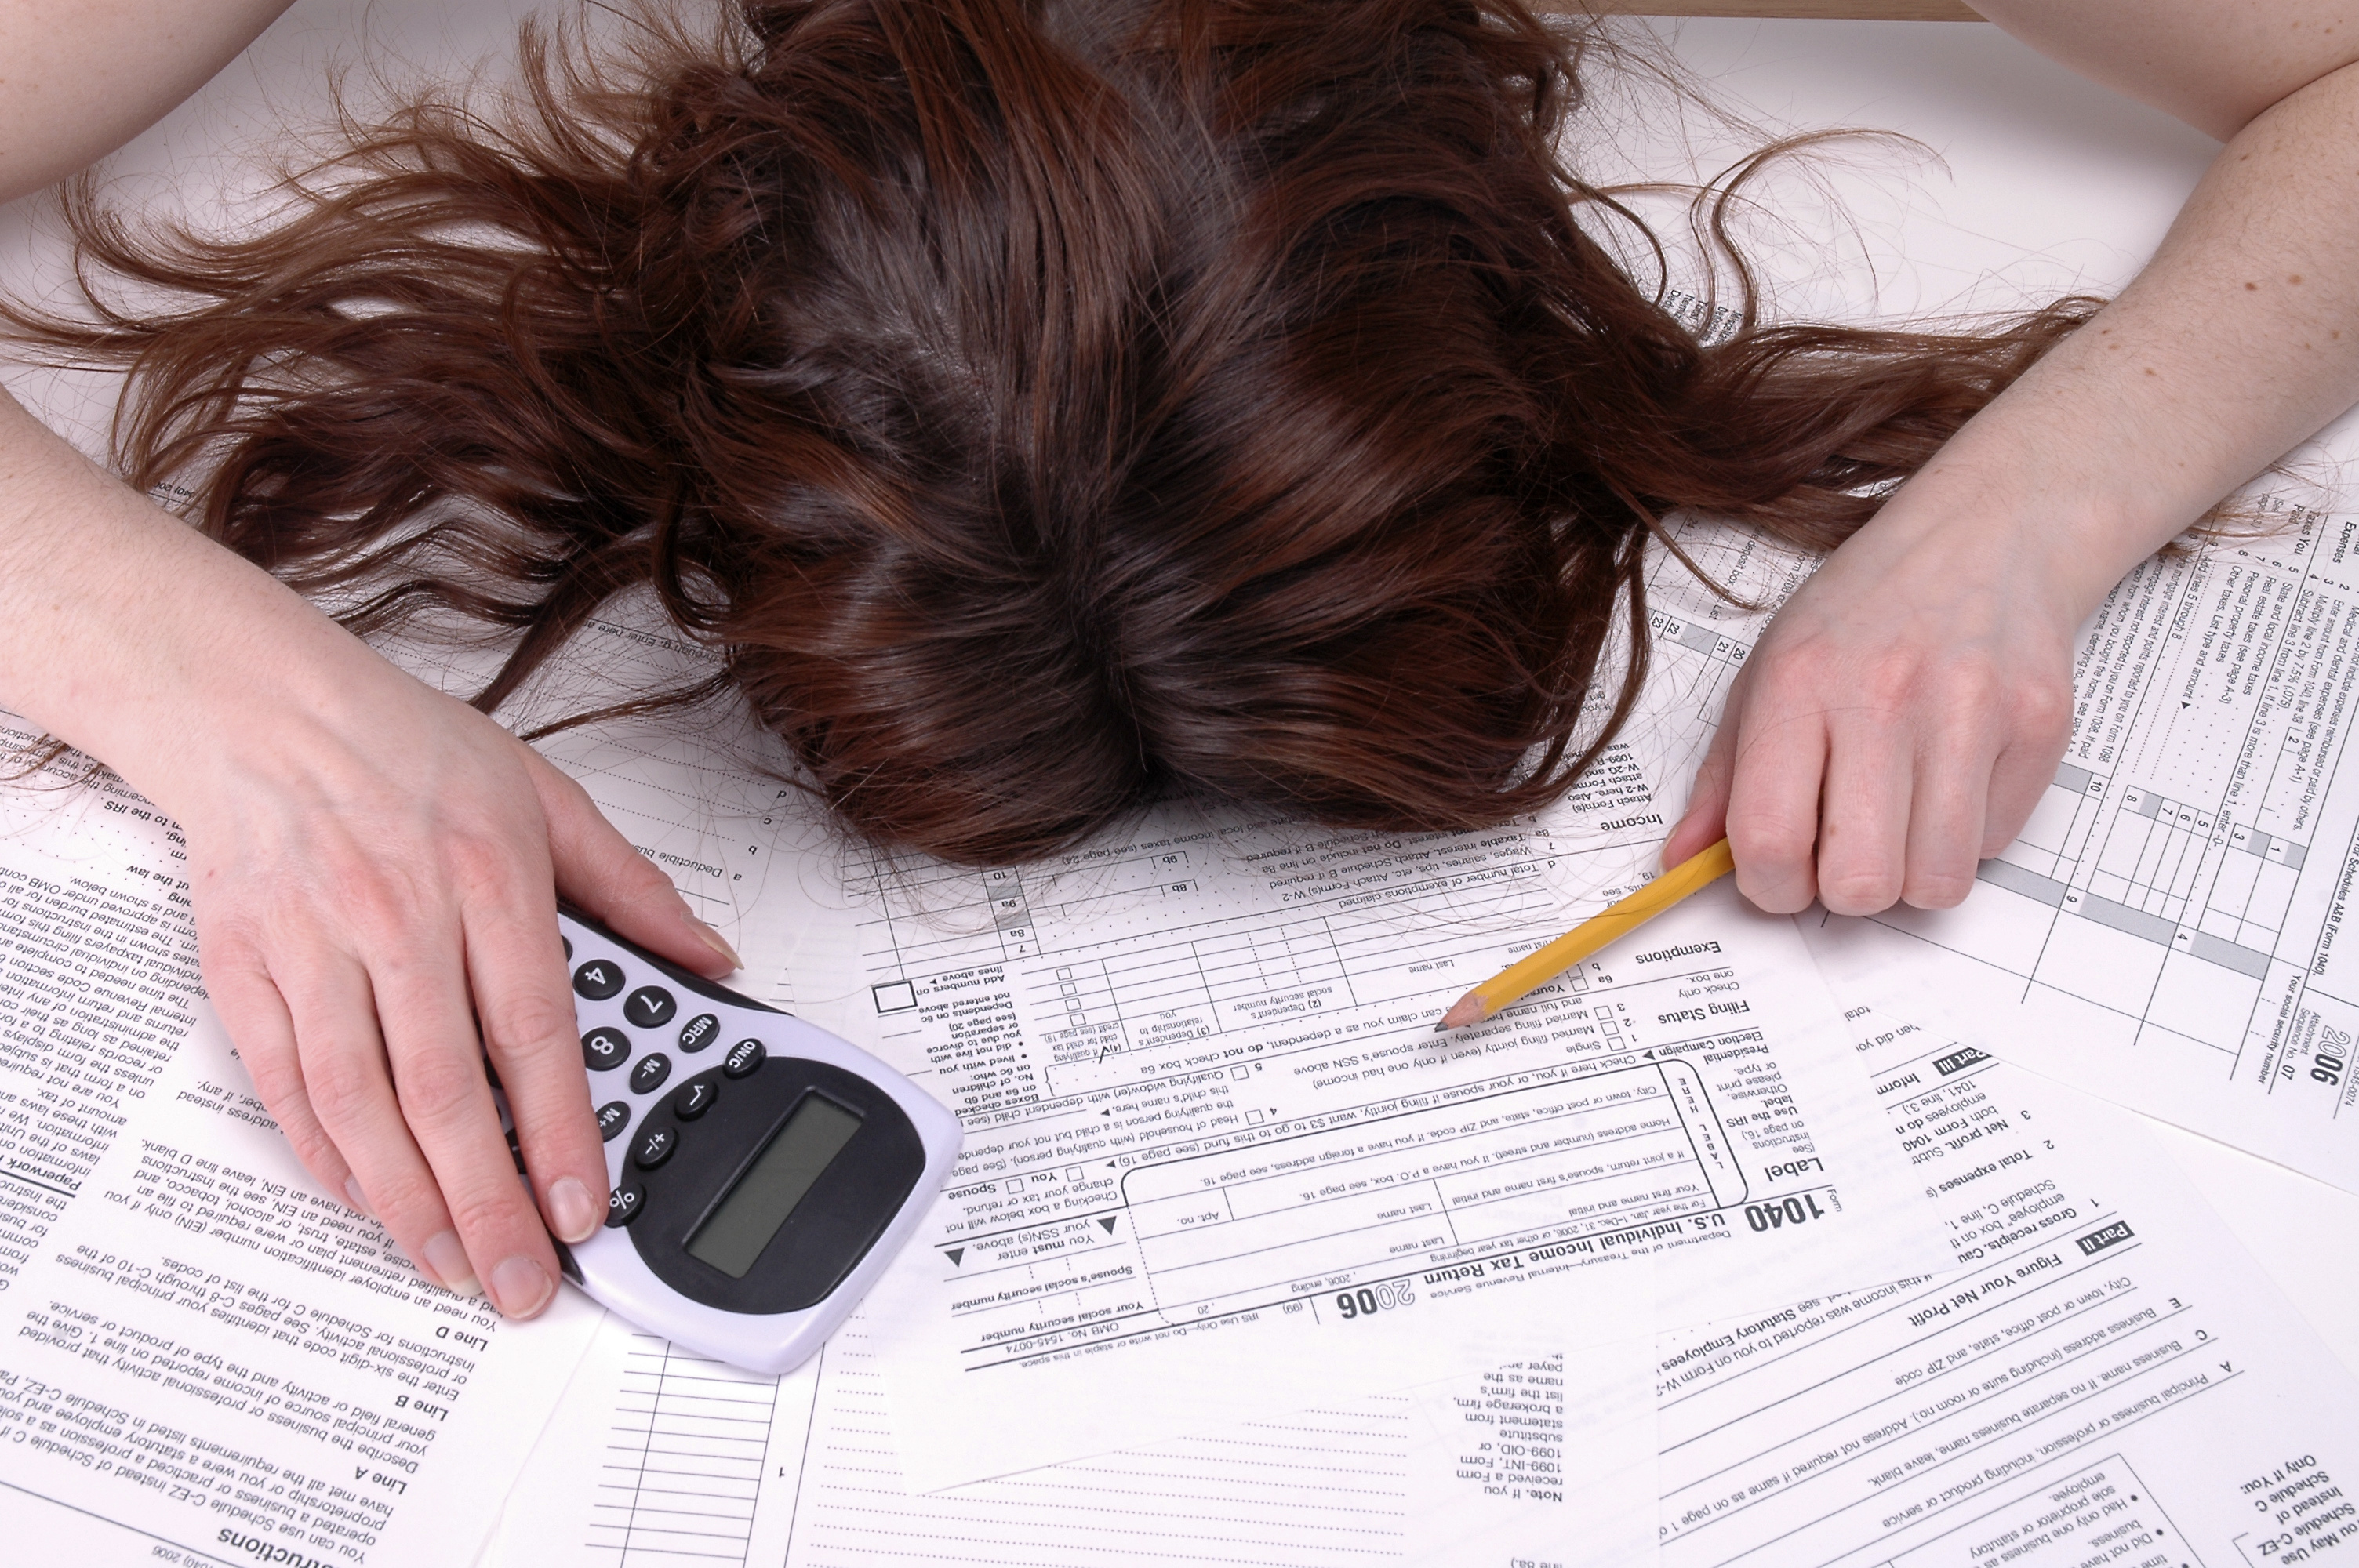 woman slumped over tax forms